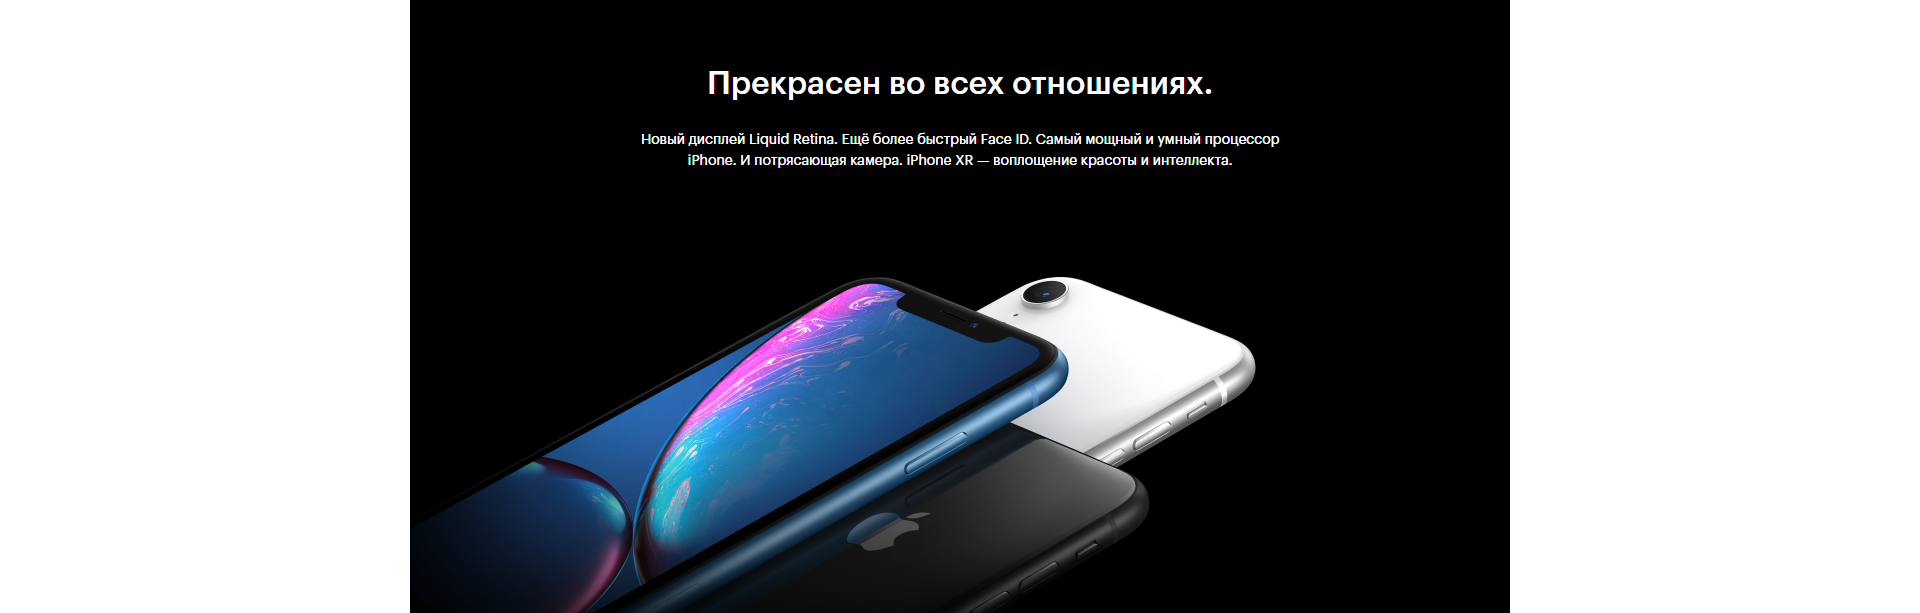 Apple iPhone XR_01